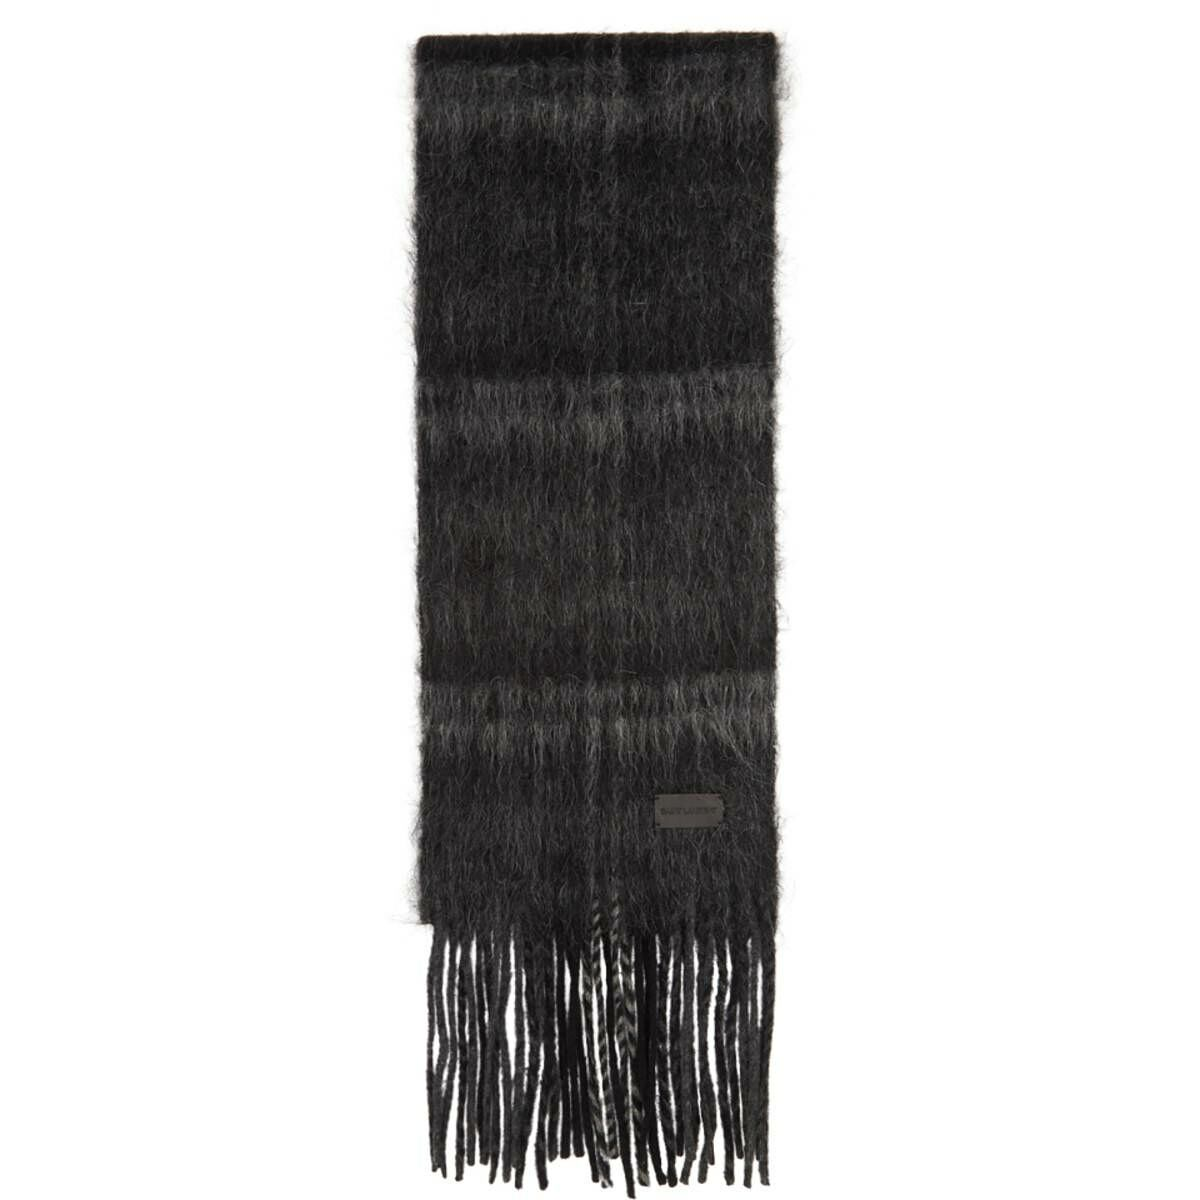 Saint Laurent Black and Grey Tartan Medium Scarf Ssense USA MEN Men ACCESSORIES Mens SCARFS